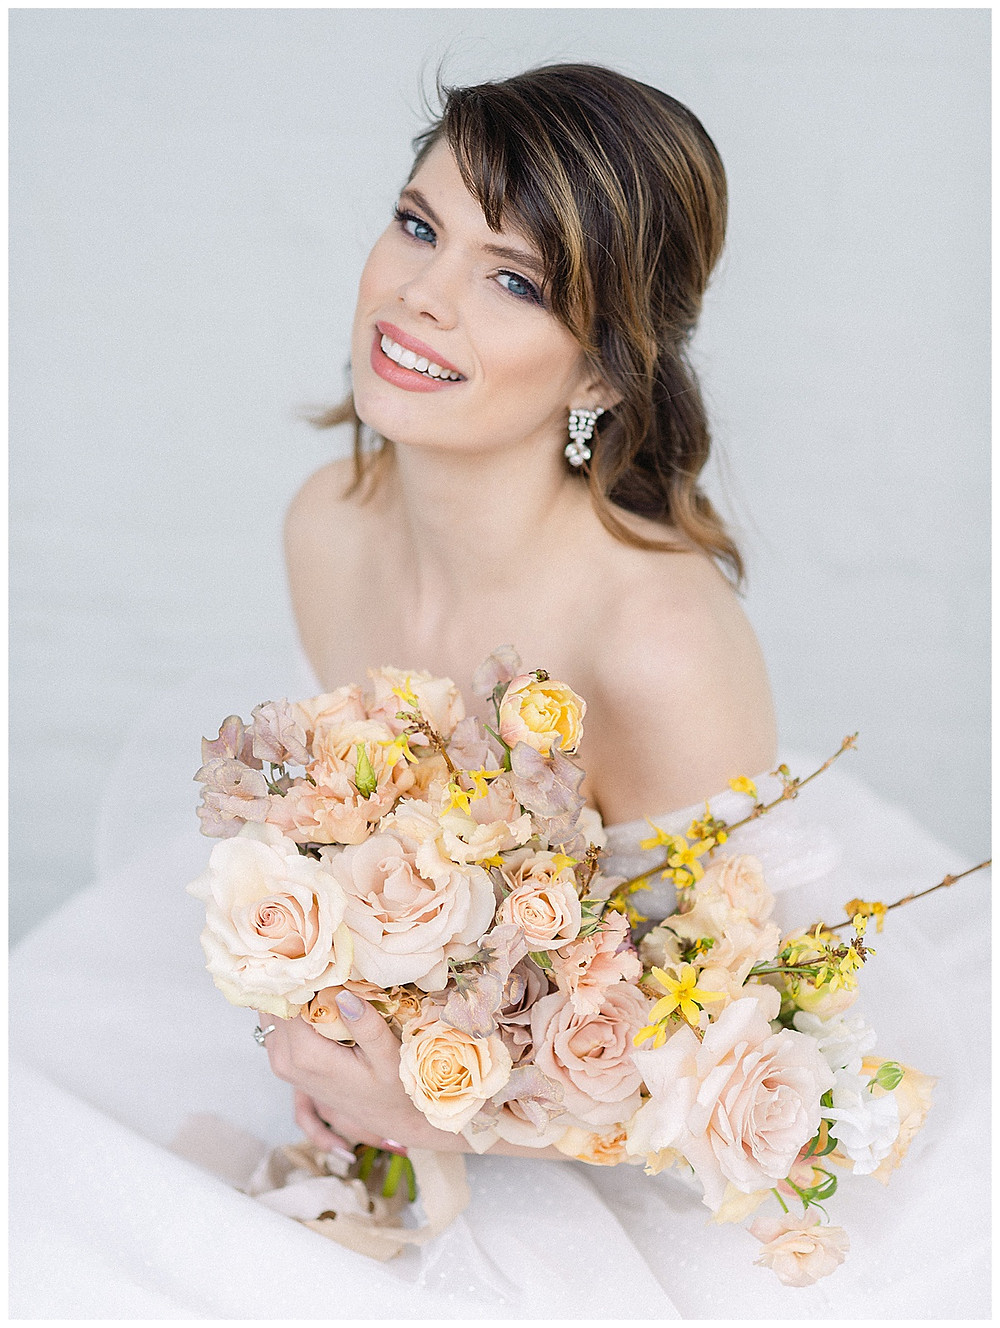 film photography, dallas wedding, bride holding bouquet with yellow, pink, white, green, peach flowers, sitting, The Place At Tyler, Dallas Texas , dallas wedding photography